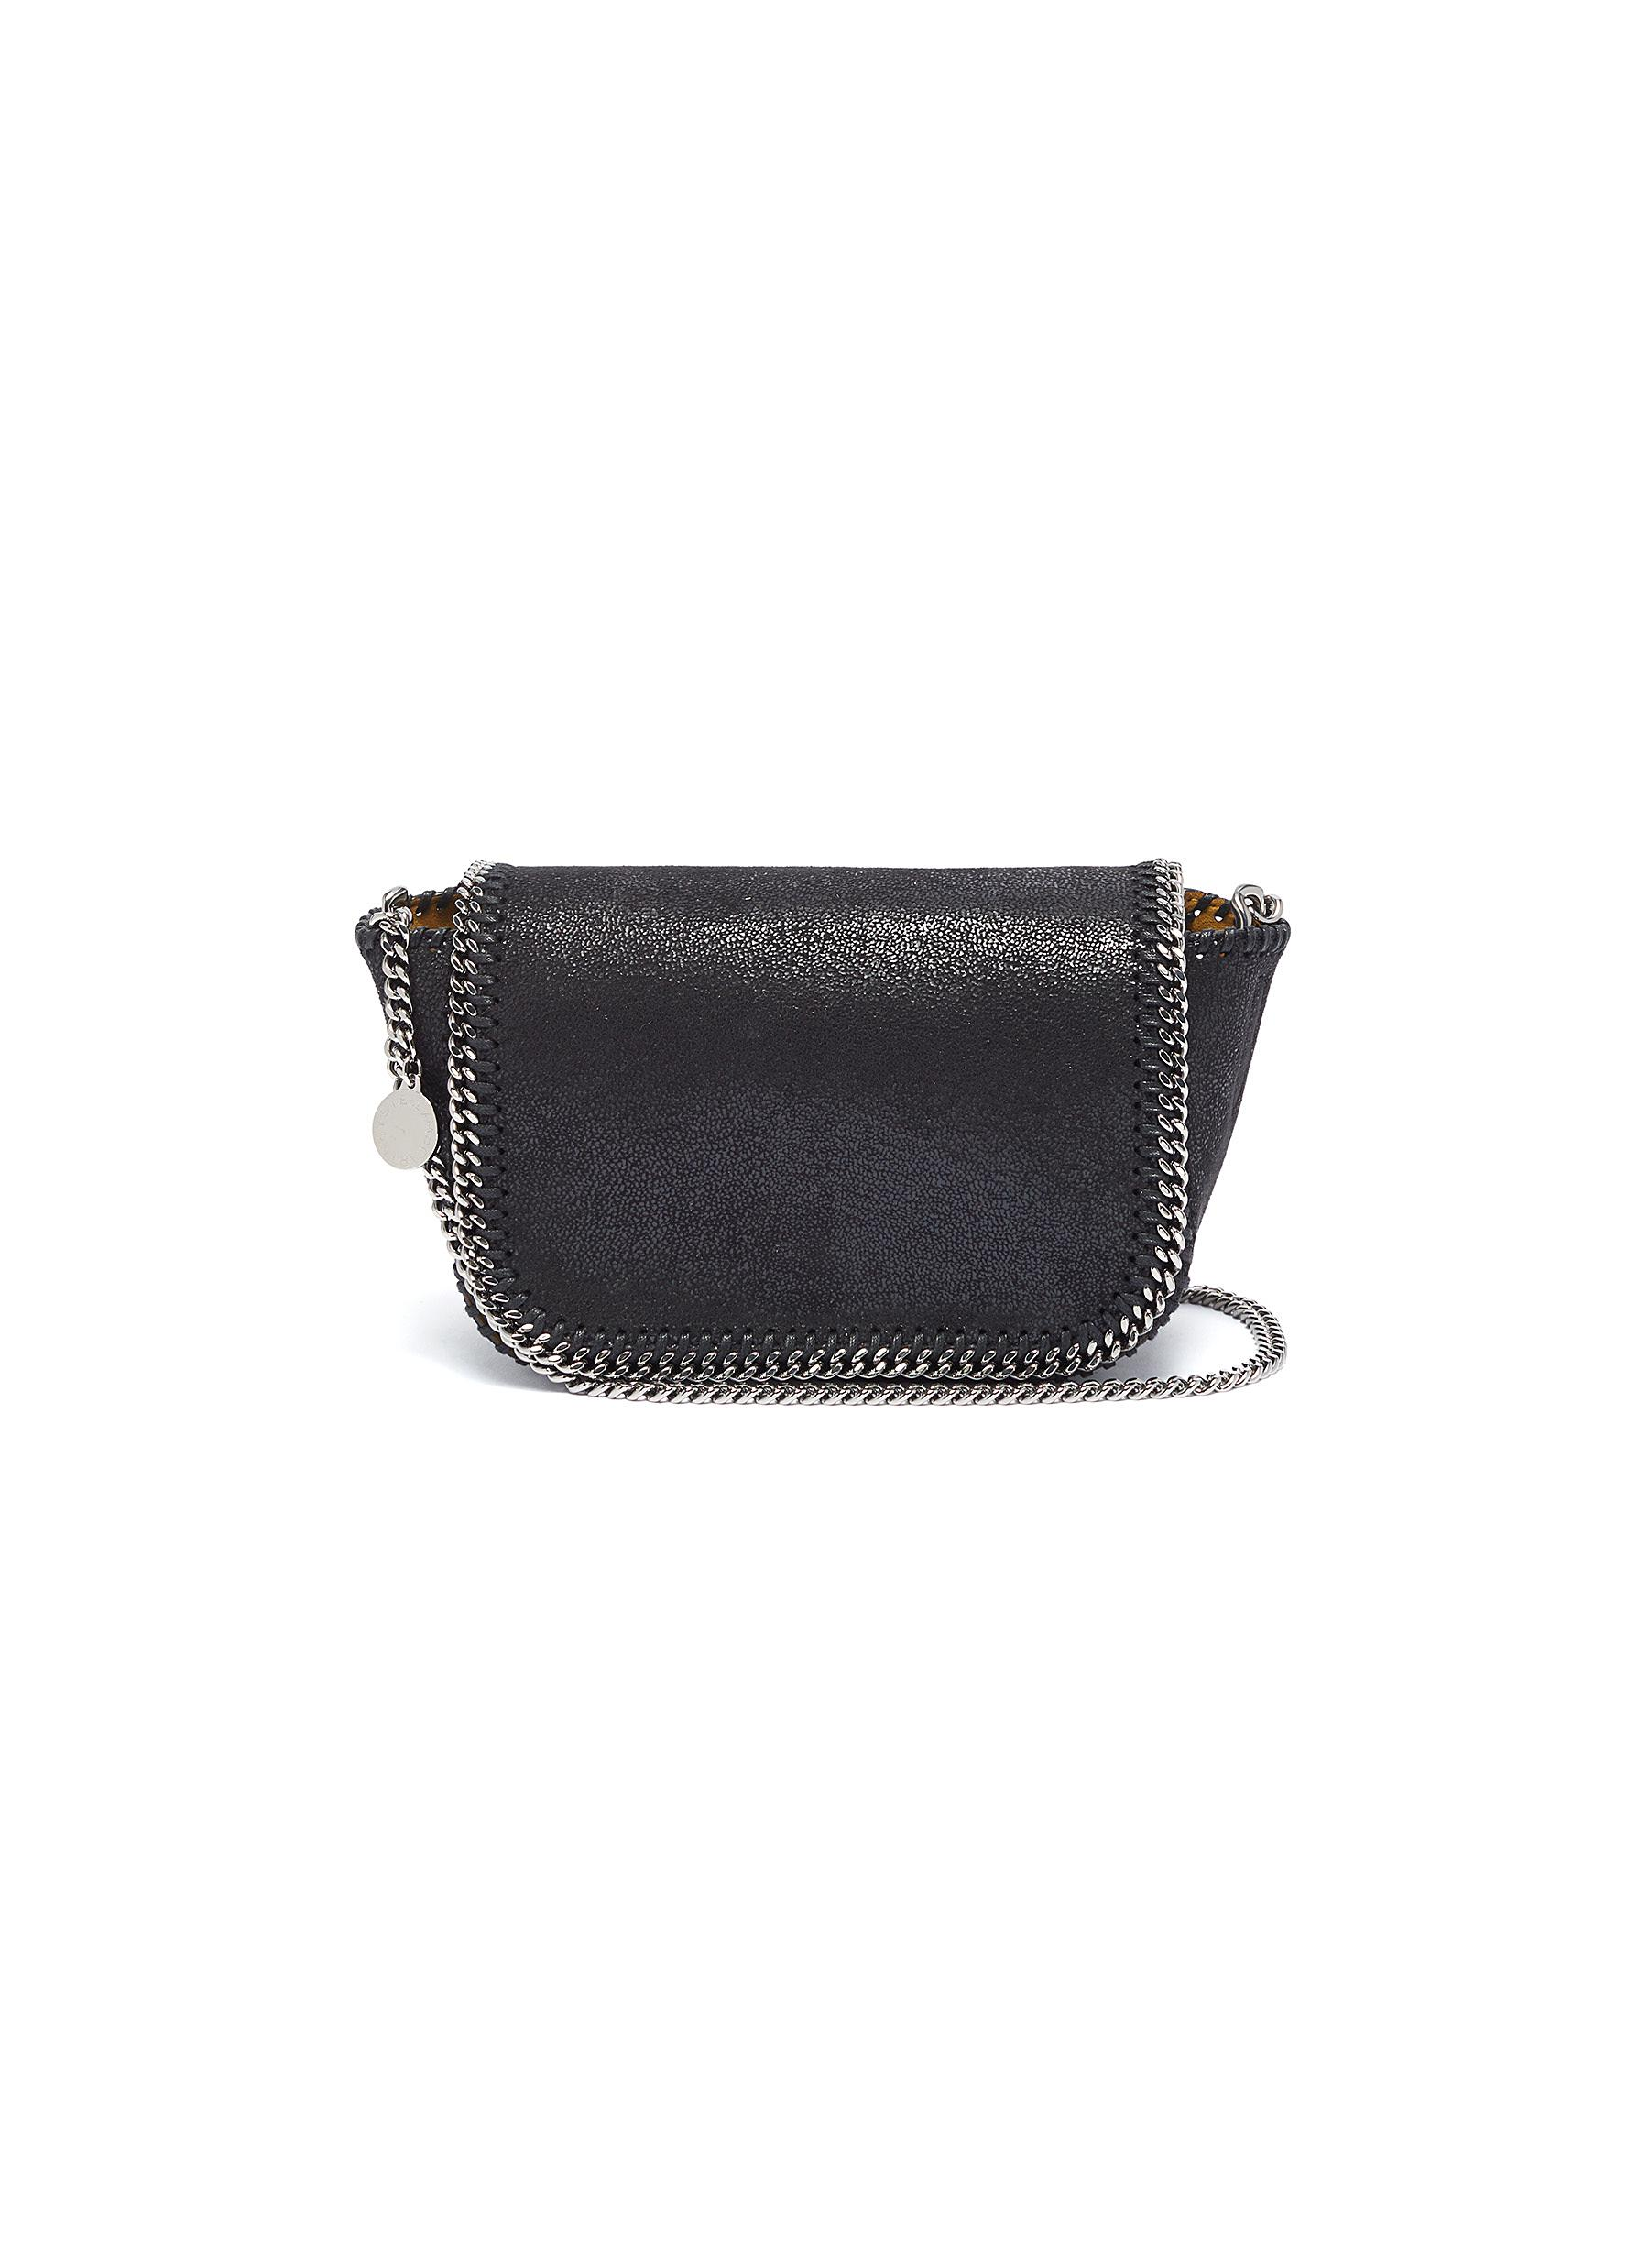 ca9a442983 Stella McCartney.  Falabella  mini shaggy deer crossbody bag